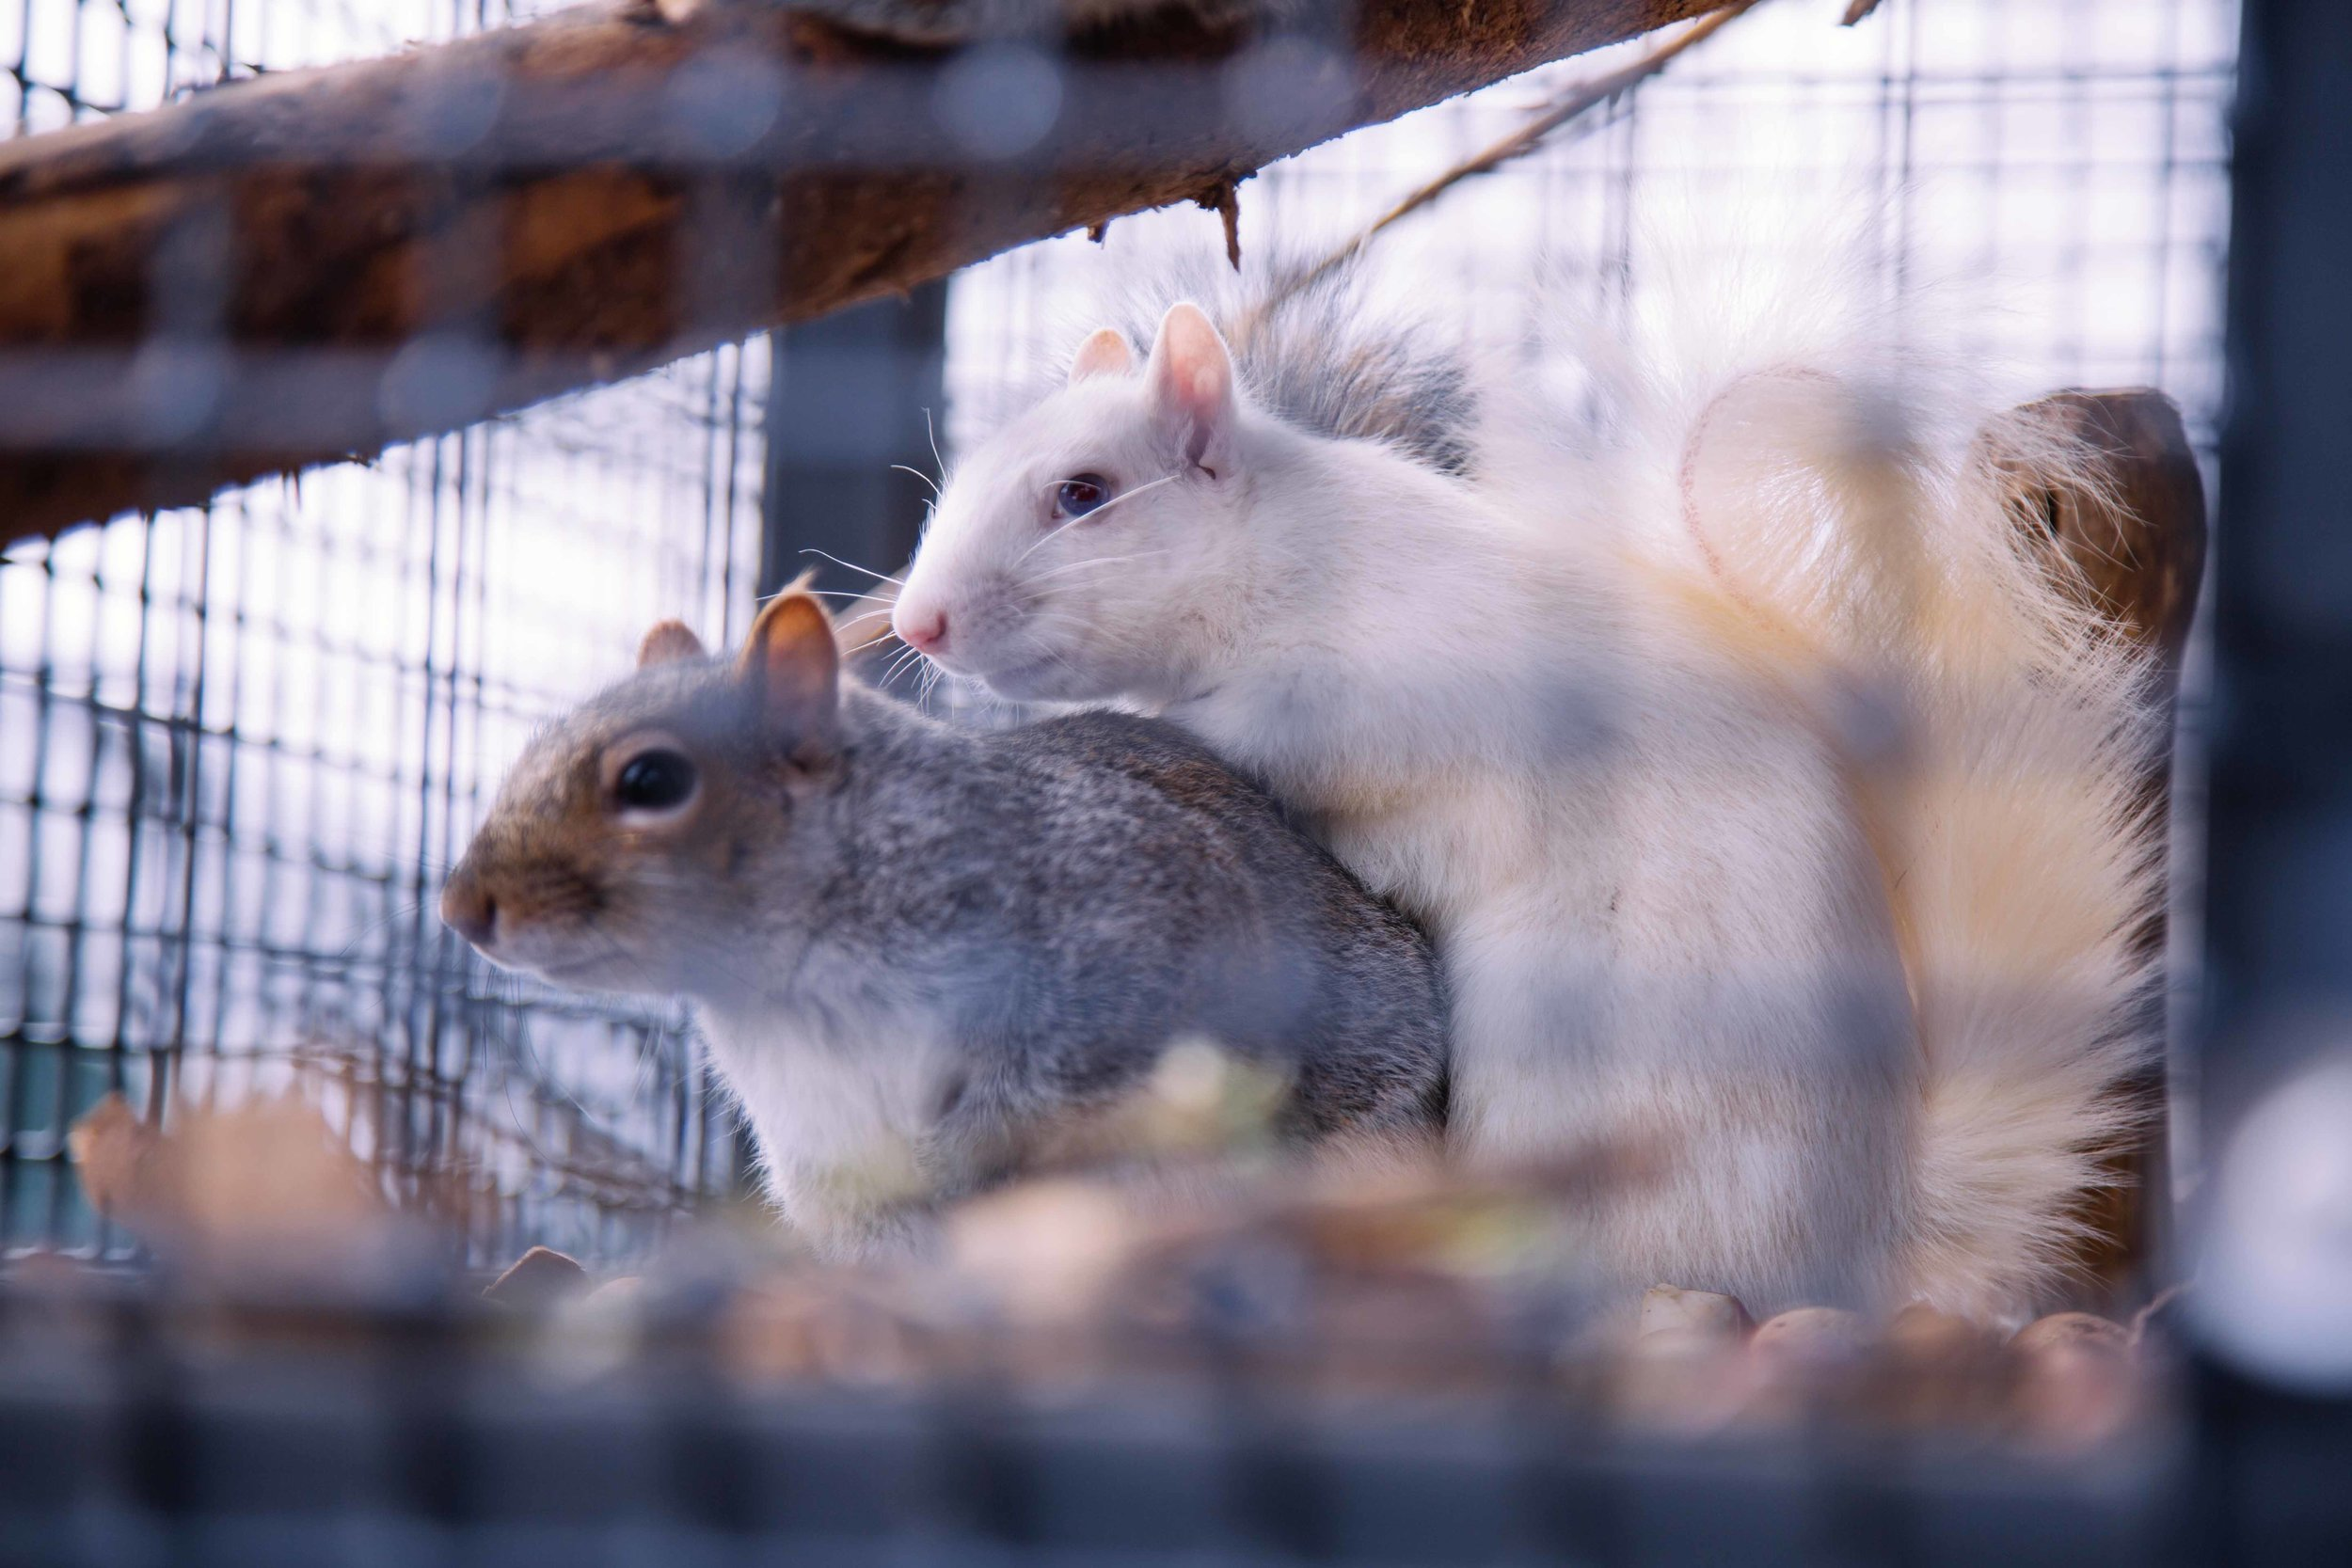 When all of the other baby squirrels started turning grey, Filbert's white fur and vibrant blue eyes stood out to the sanctuary staff. He is not an albino squirrel, but an extremely rare mutation of an eastern grey squirrel (which are quite common to the area). Here, he's playing with one of his brothers in a large outdoor enclosure.